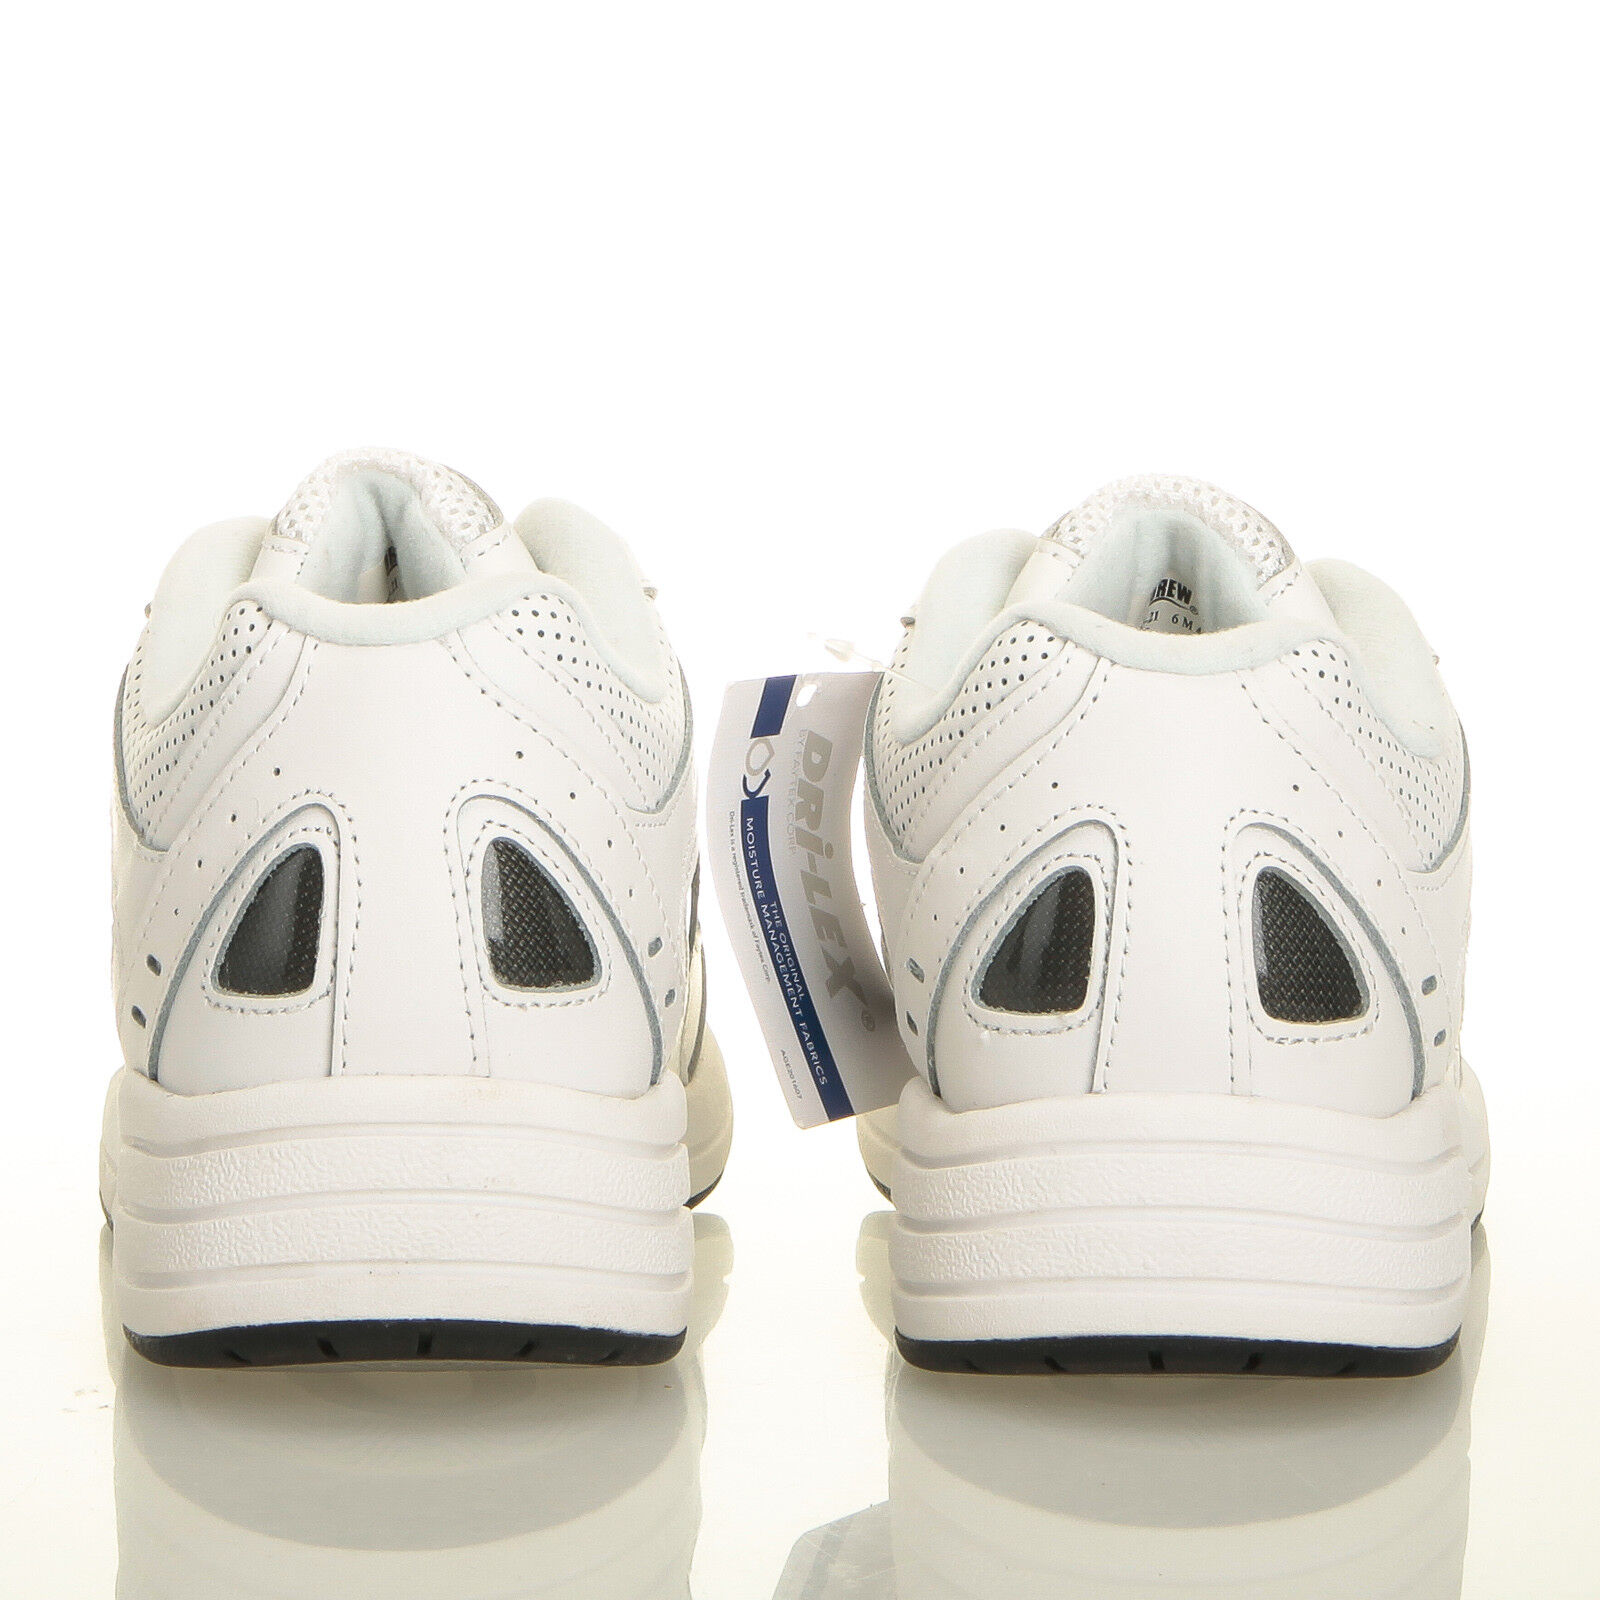 Drew Flare blanc Leather Perforated Leather blanc & Mesh Walking Chaussures - femmes 6 M 89daaf